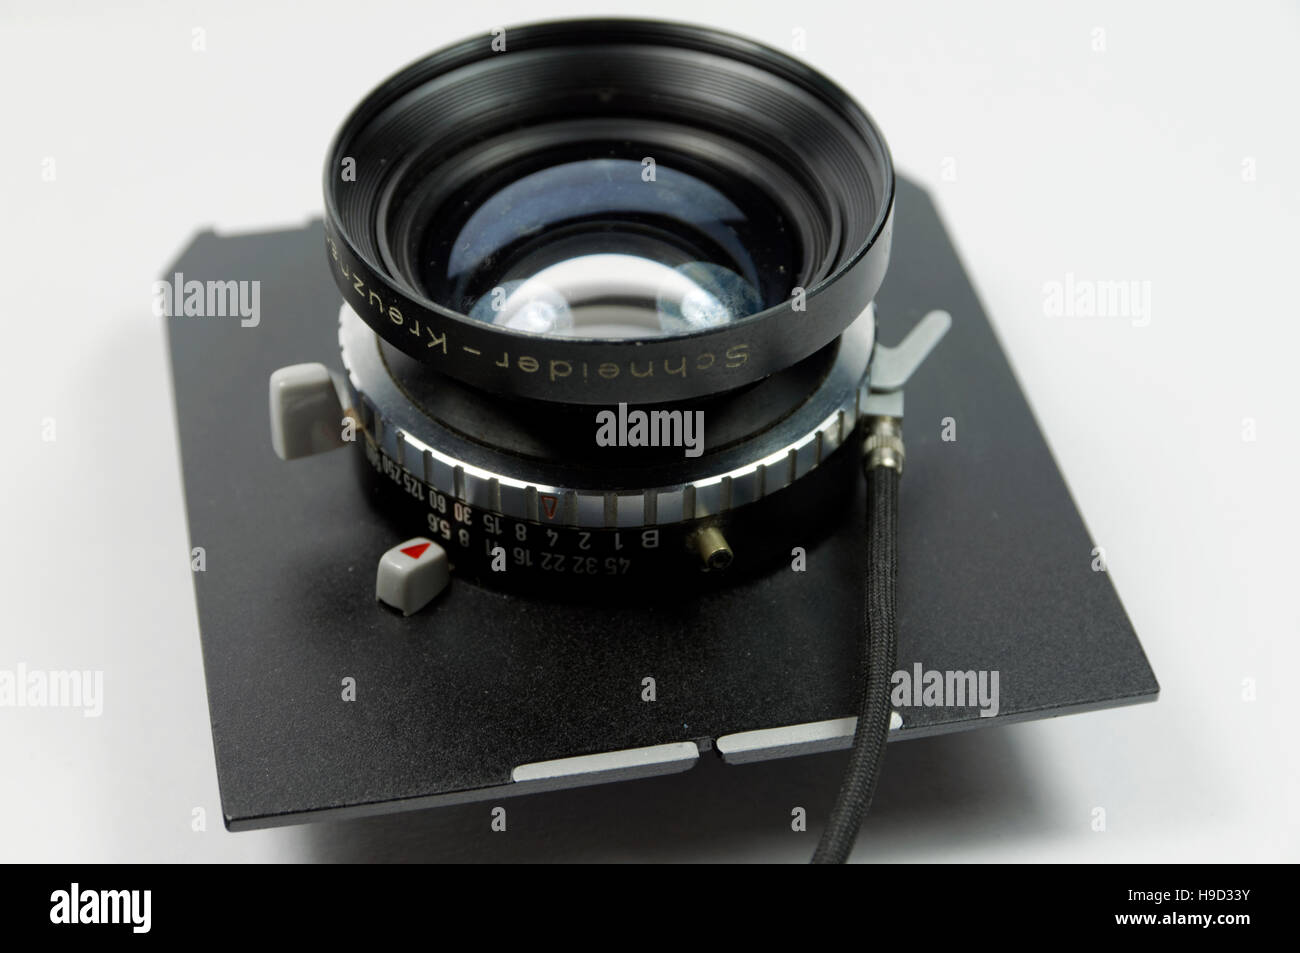 Schneider Kreuznach 150mm large format camera lens on lens board. - Stock Image